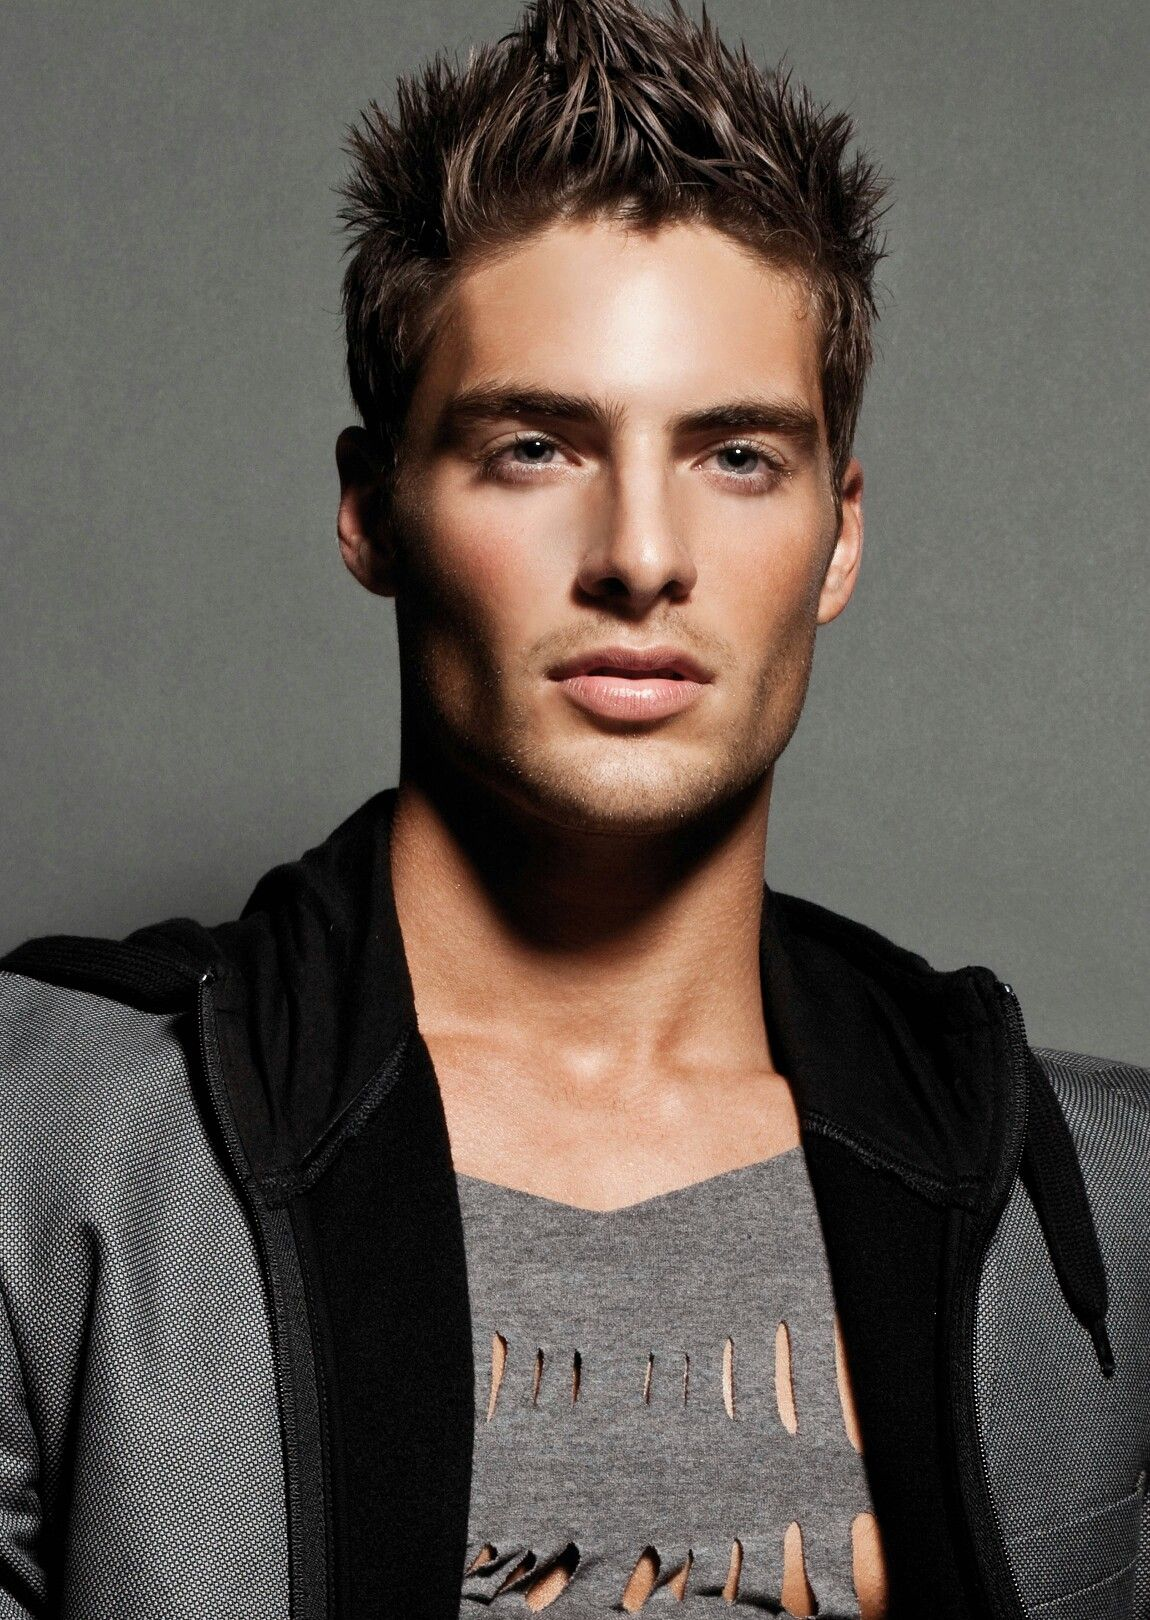 Men hairstyles | H | Pinterest | Men hairstyles, Face and Handsome